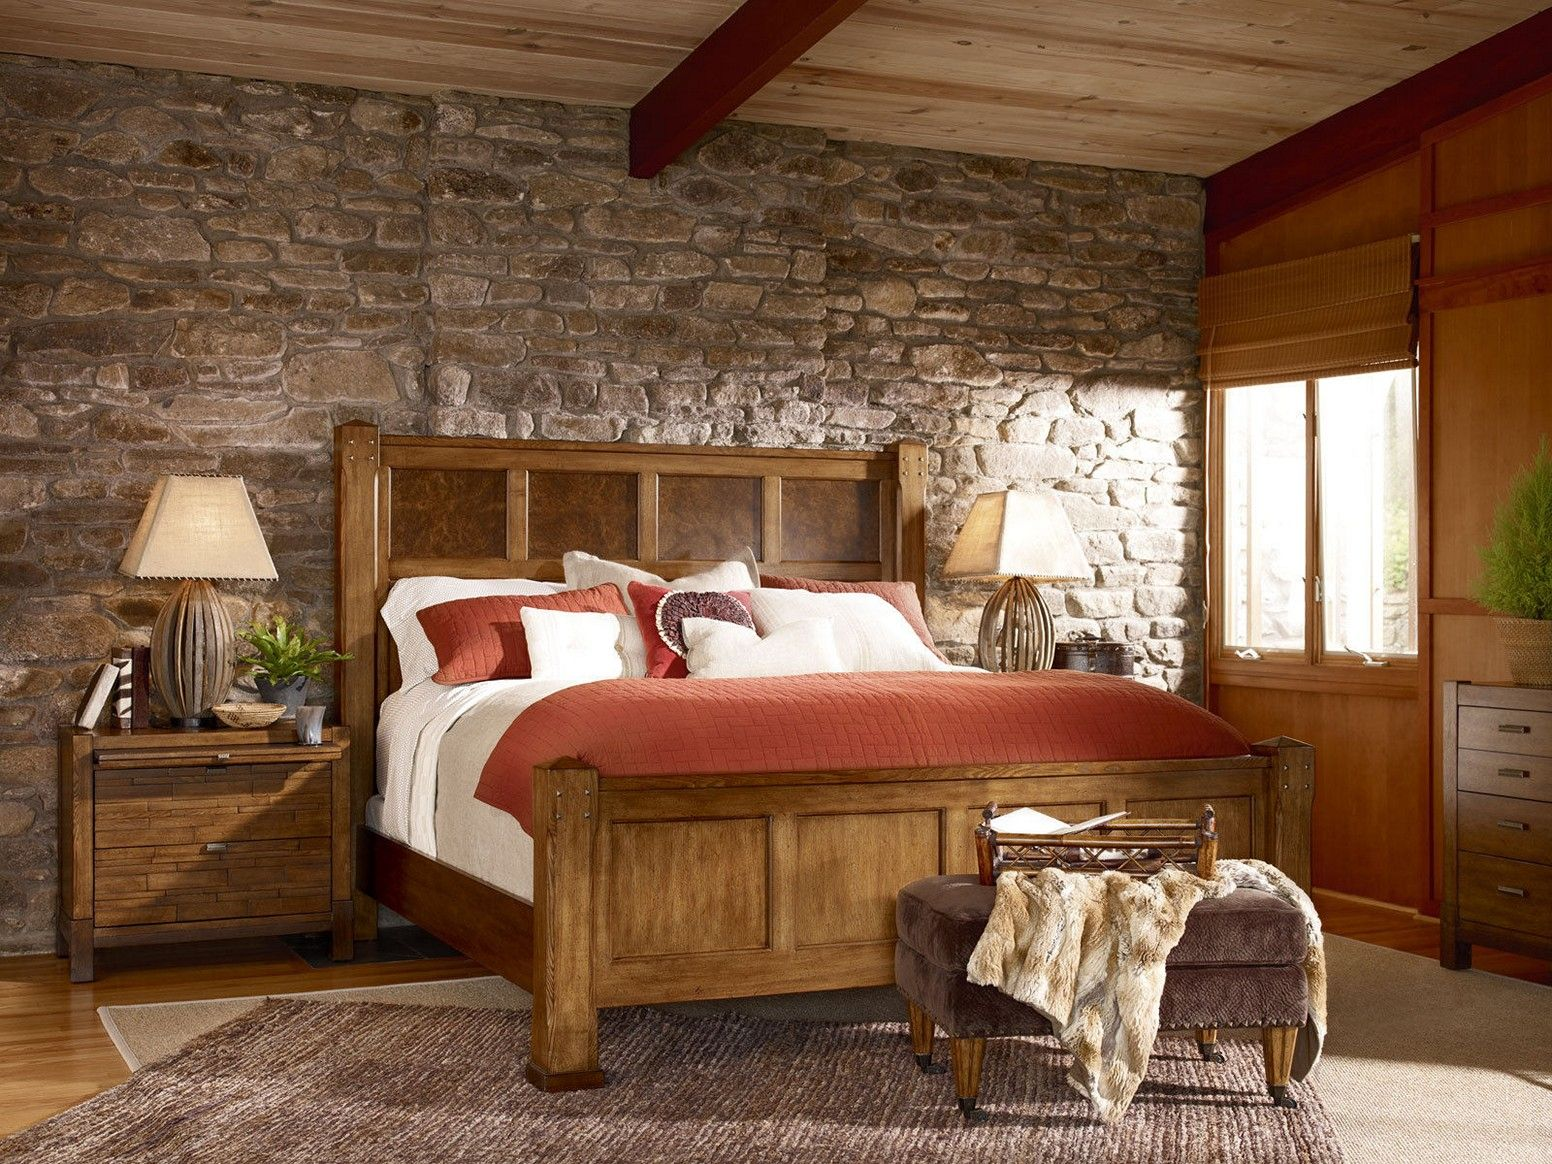 country bedroom ideas rustic country bedroom decorating ideas interior decor 11306